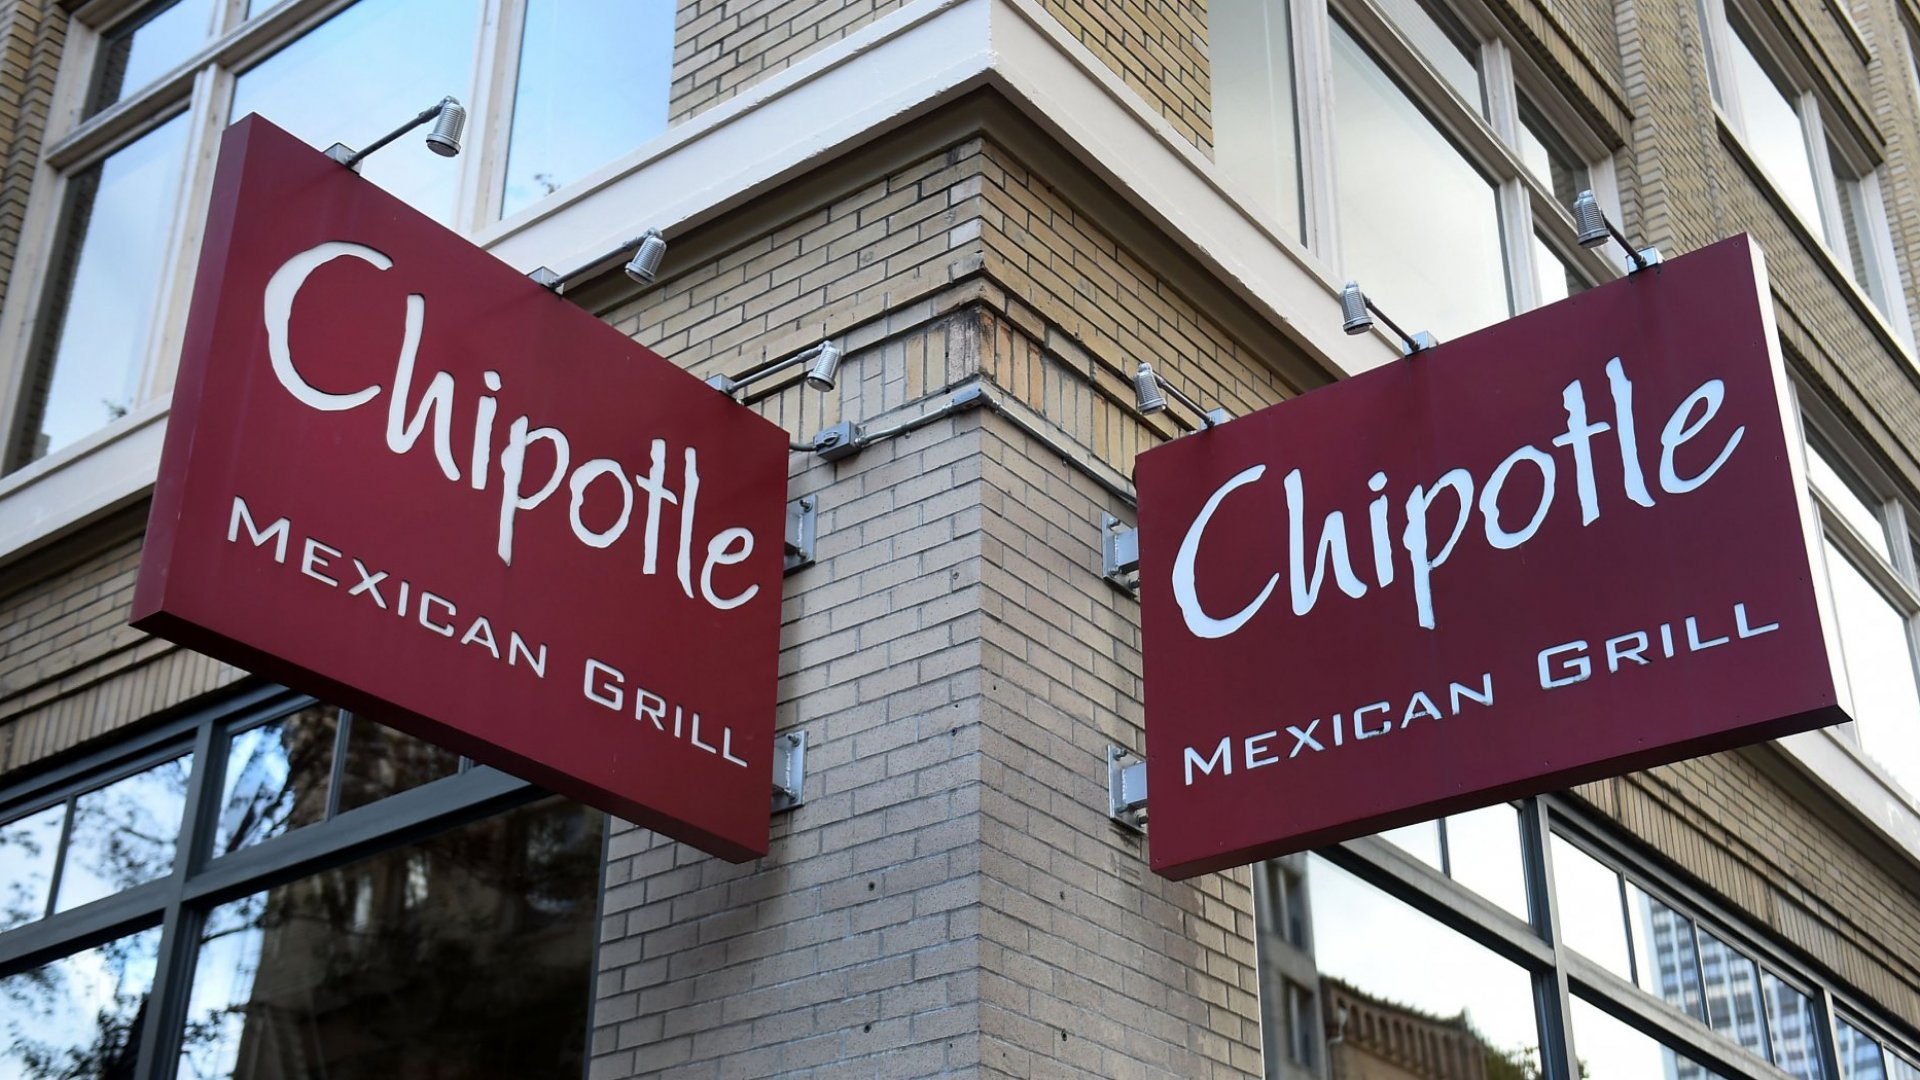 Chipotle Fired This 'Valued Employee' and Offered Her $1,000 to Go Away. Instead, She Sued for Millions--and Won. Here's the Story